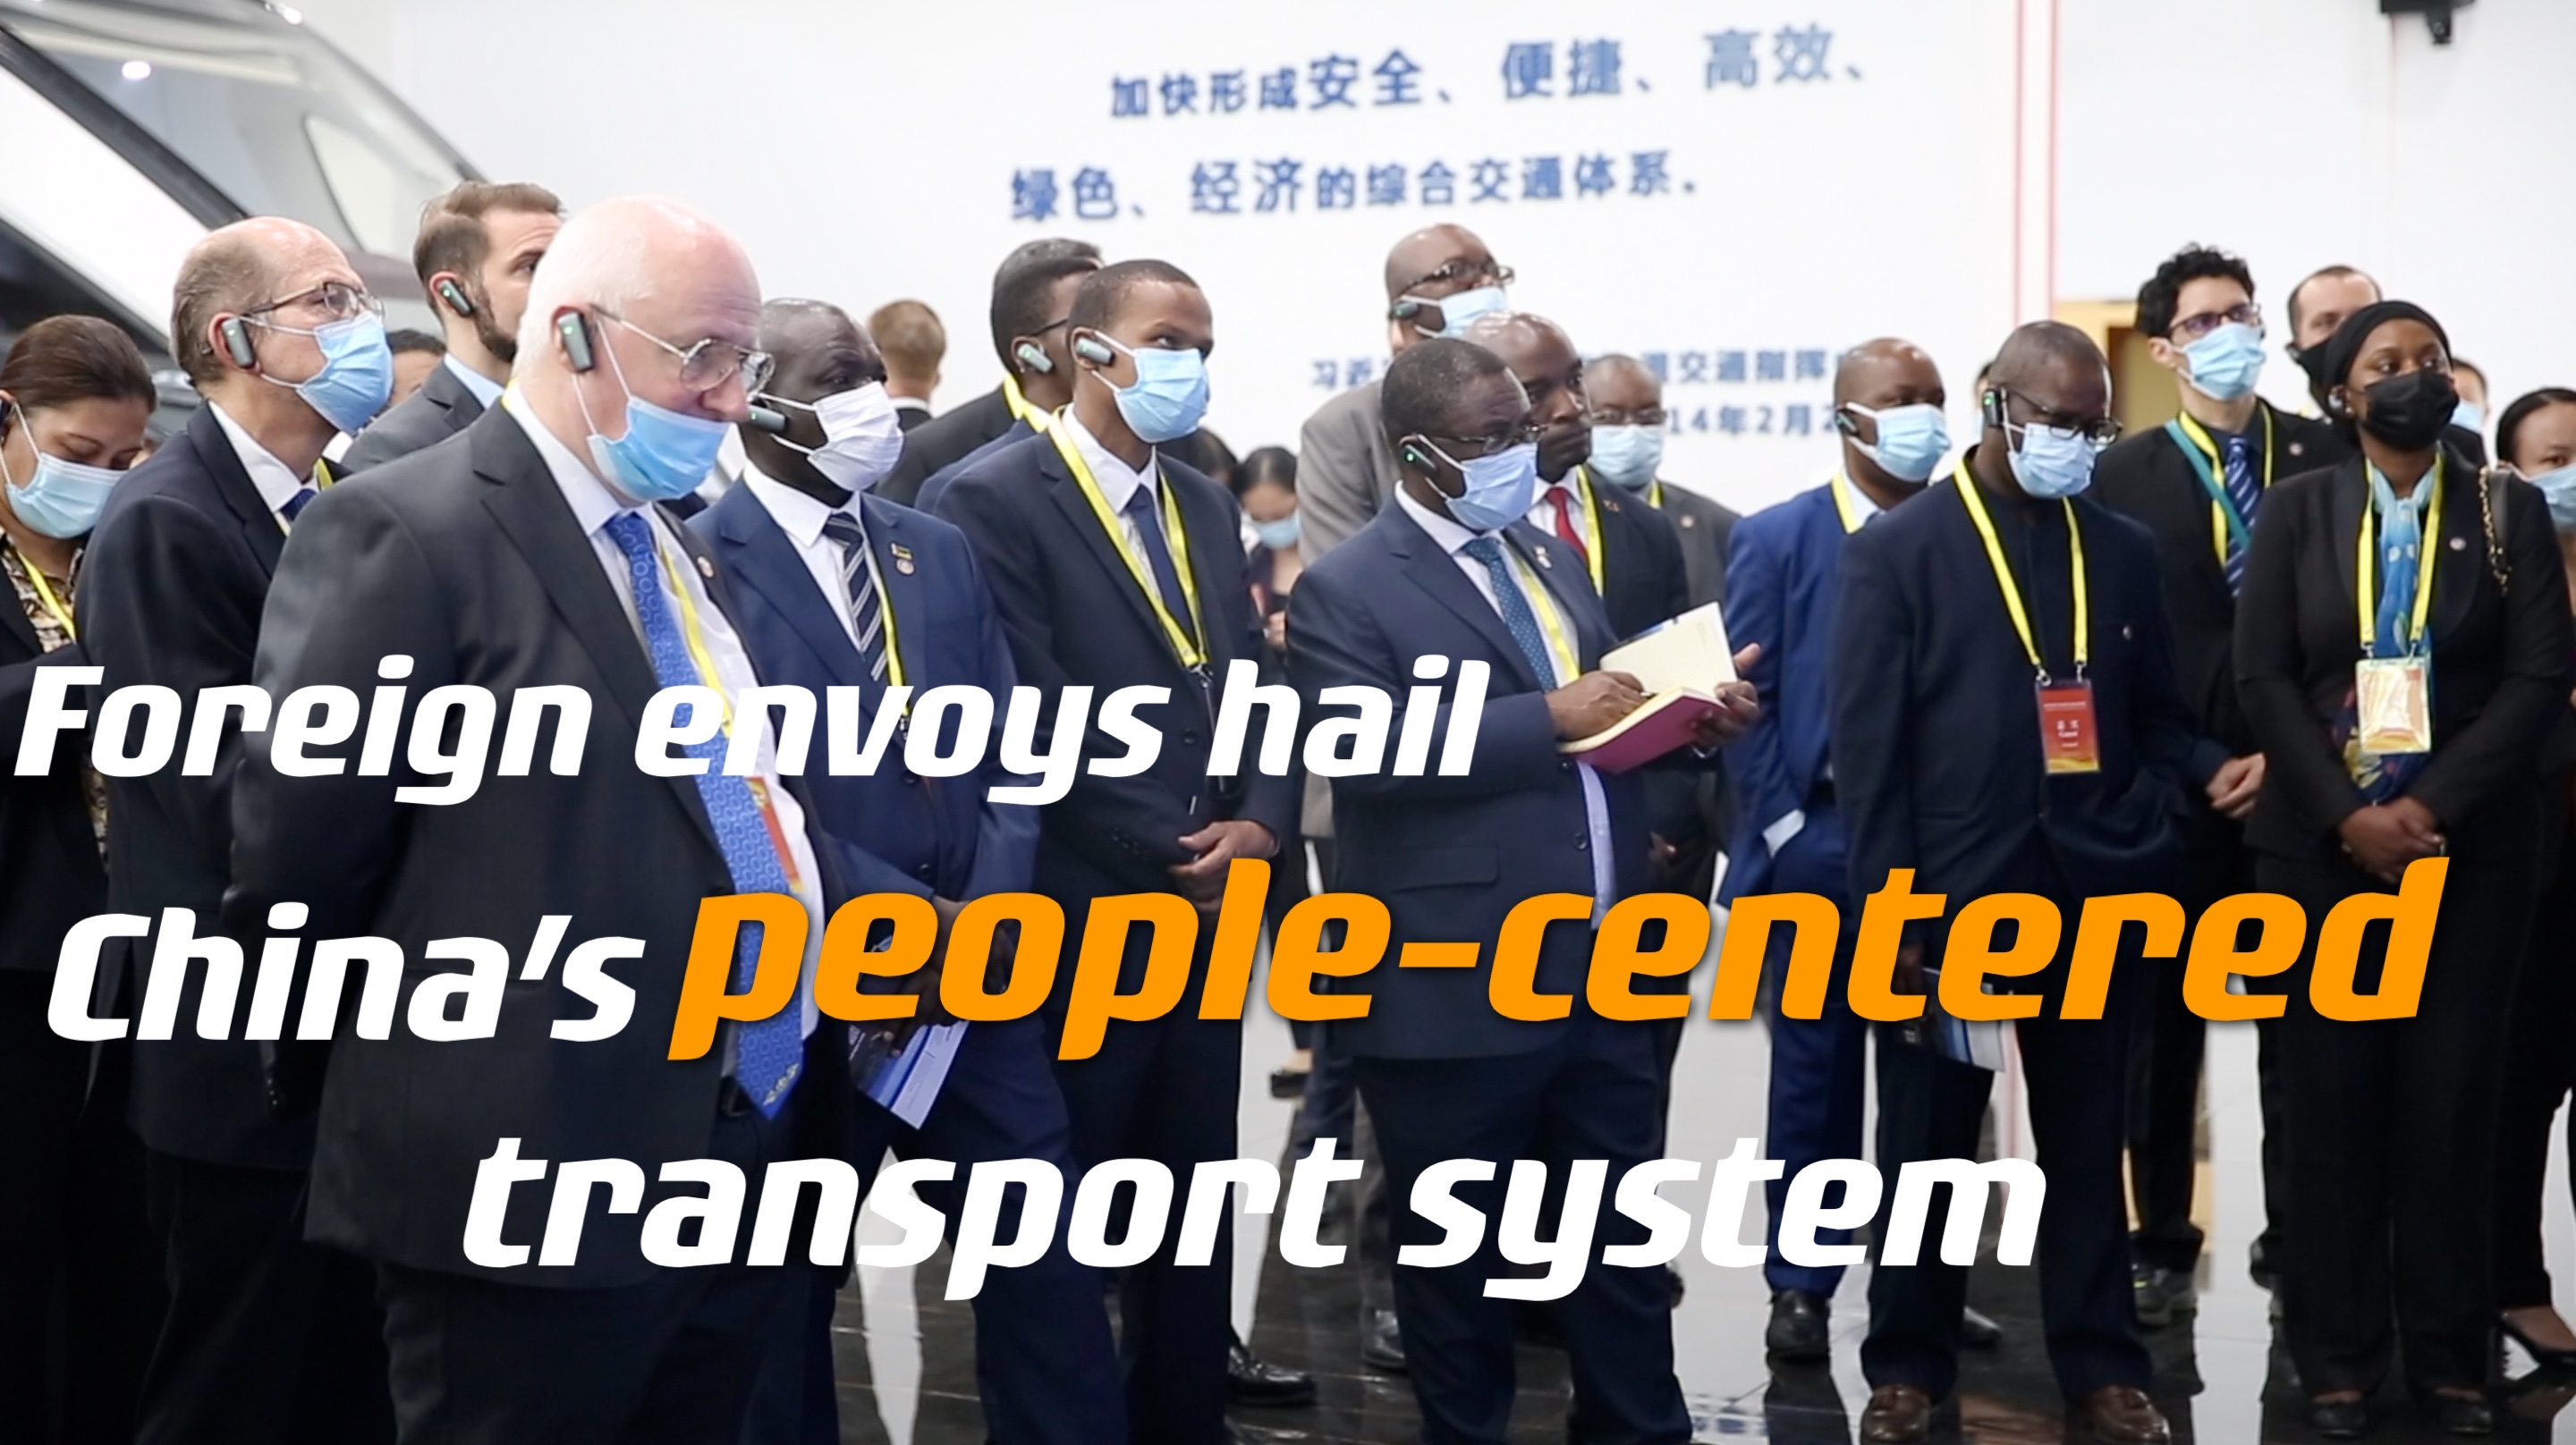 GLOBALink   Foreign envoys hail China's people-centered transport system